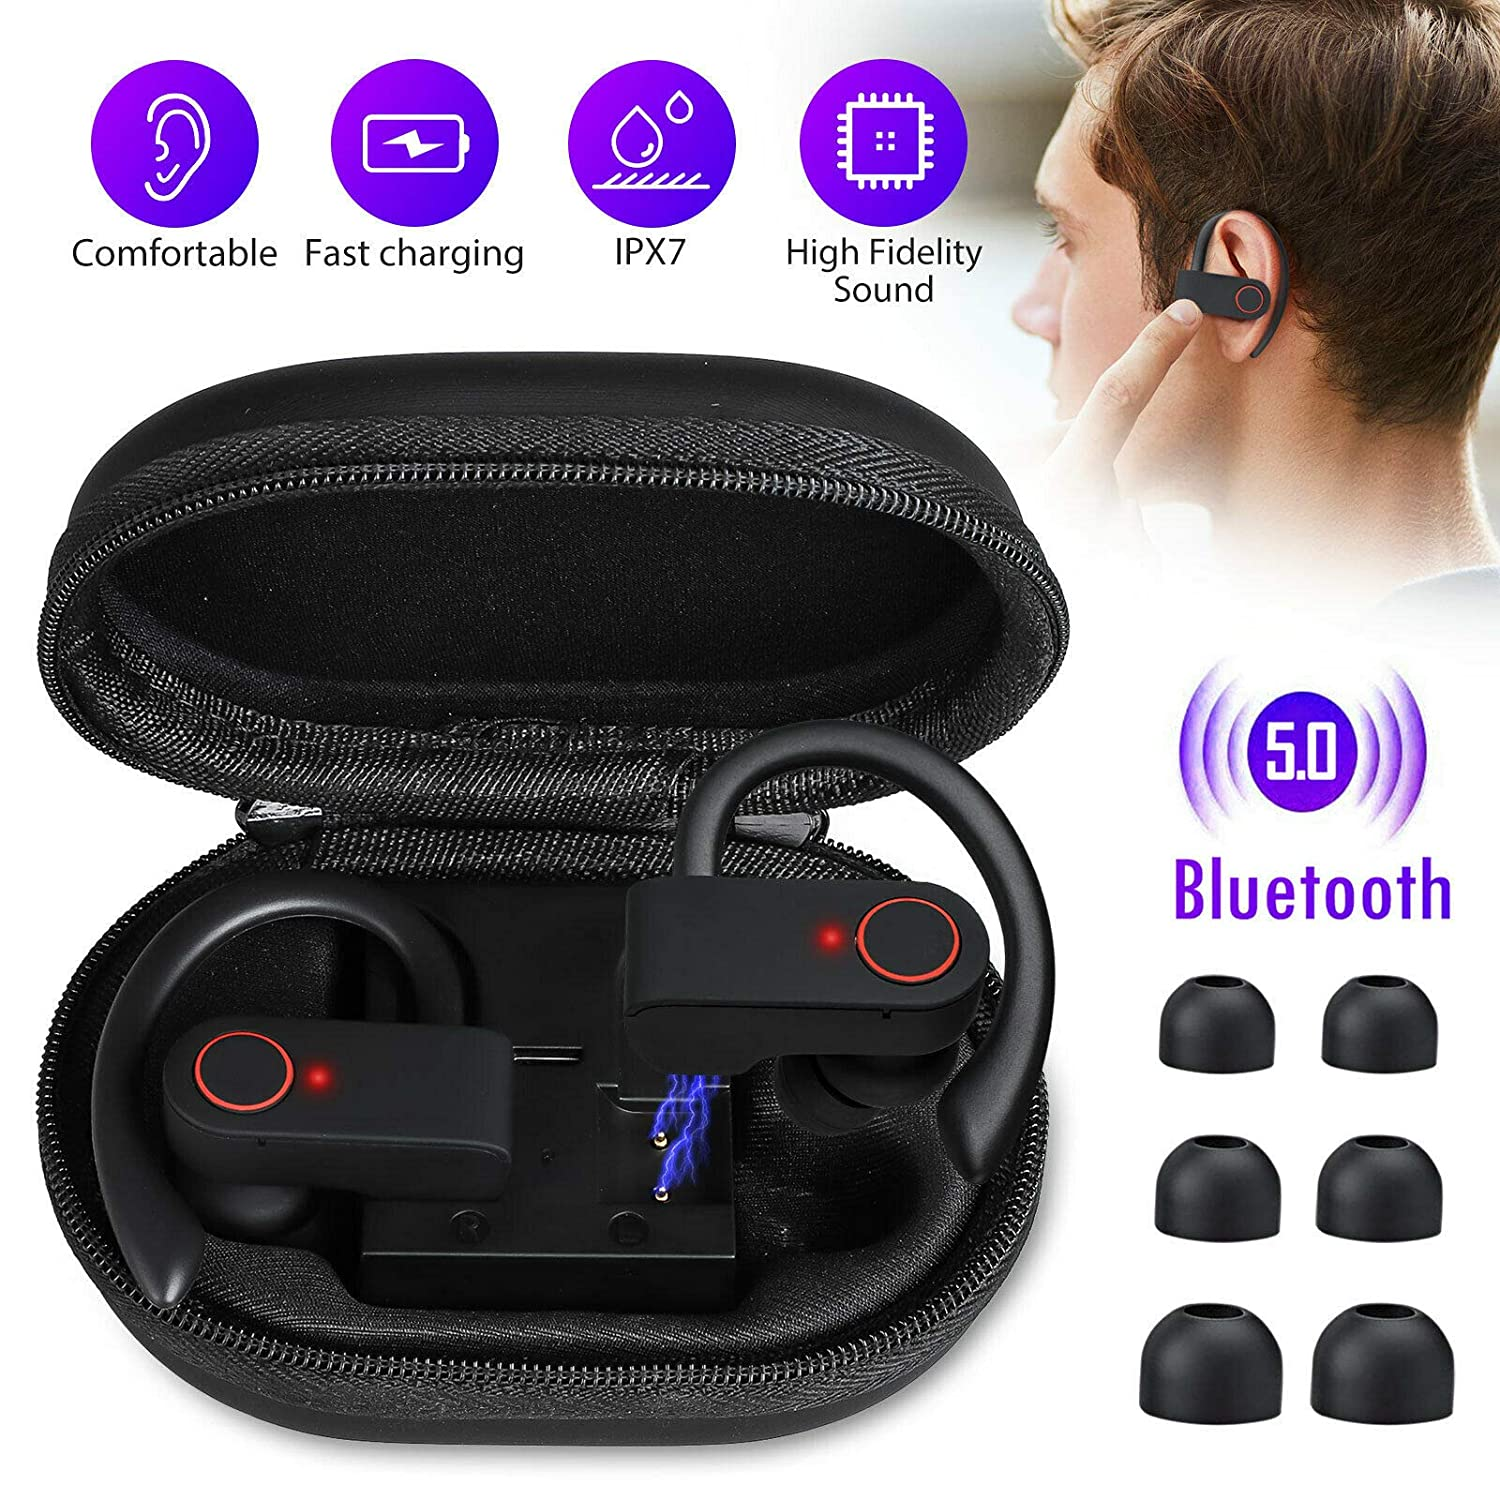 Case Safety 1x True Wireless Sport Headphones Bluetooth Earphones Twins Ear Hook Bass Headset